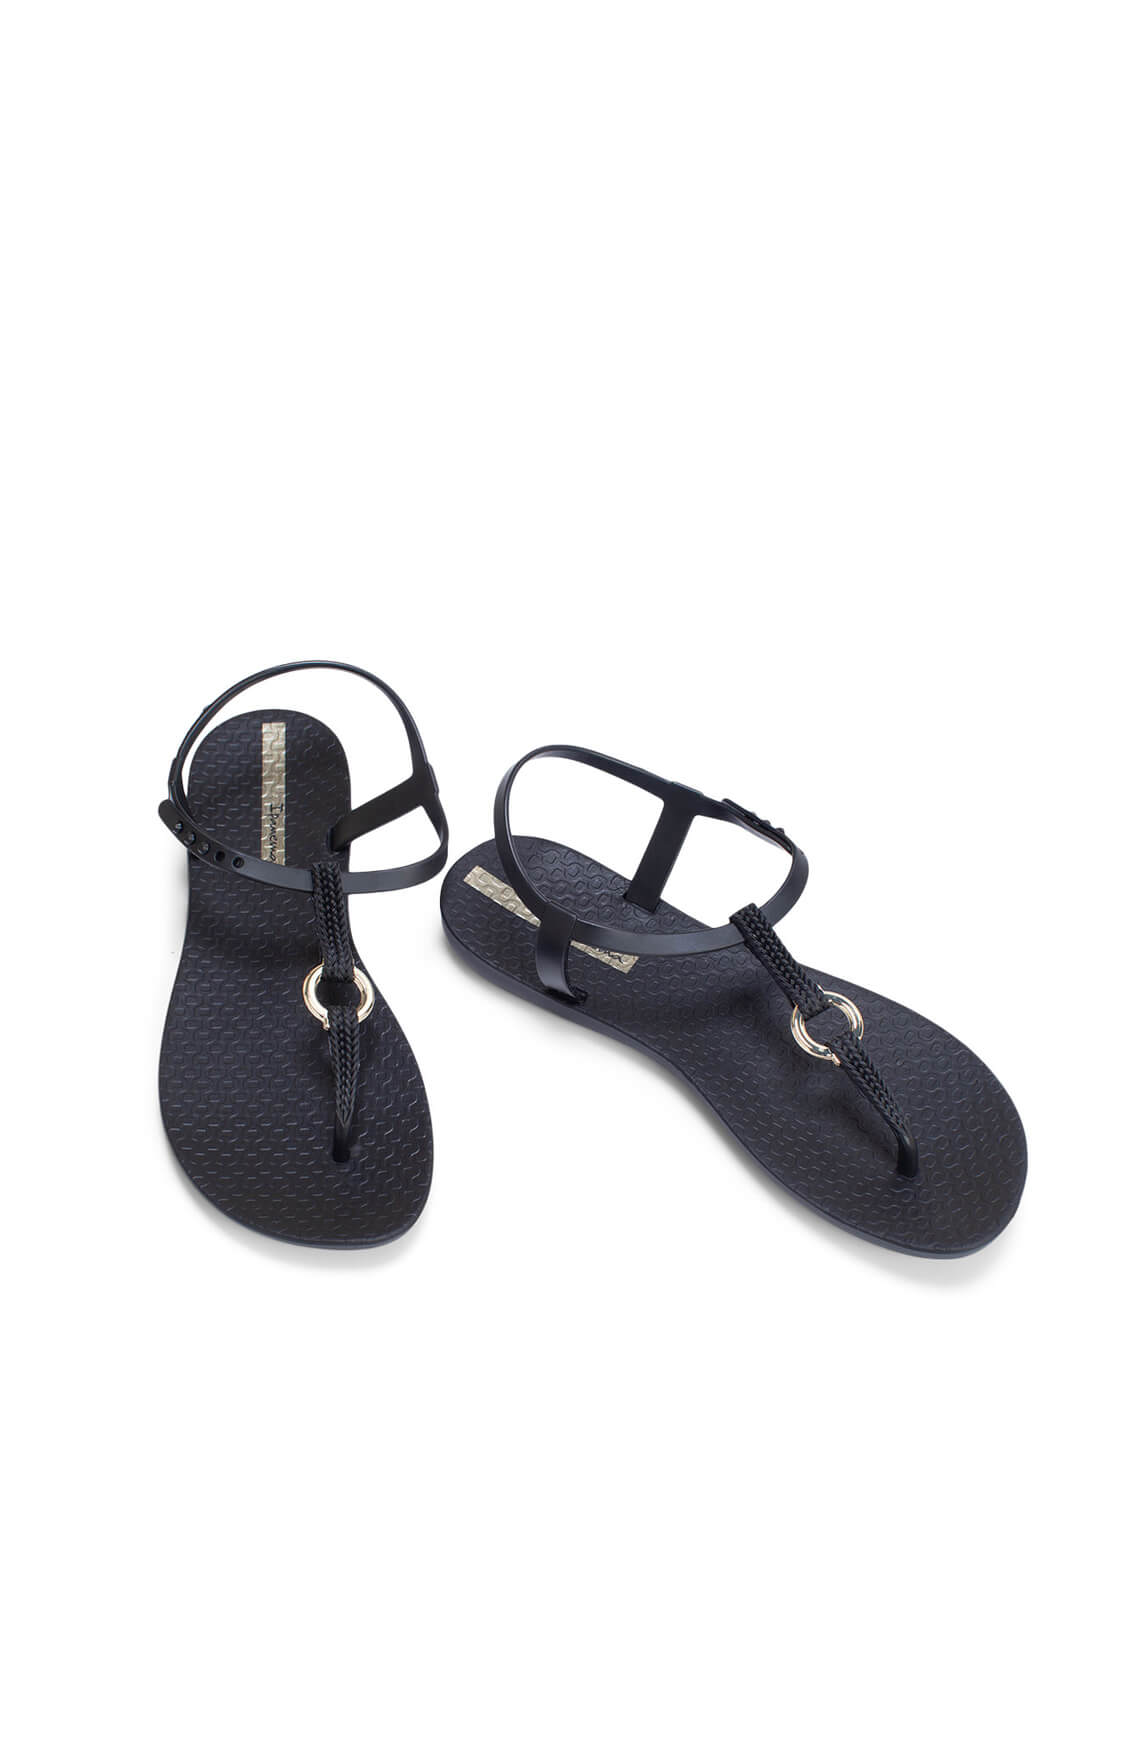 Ipanema Dames Charm slipper zwart